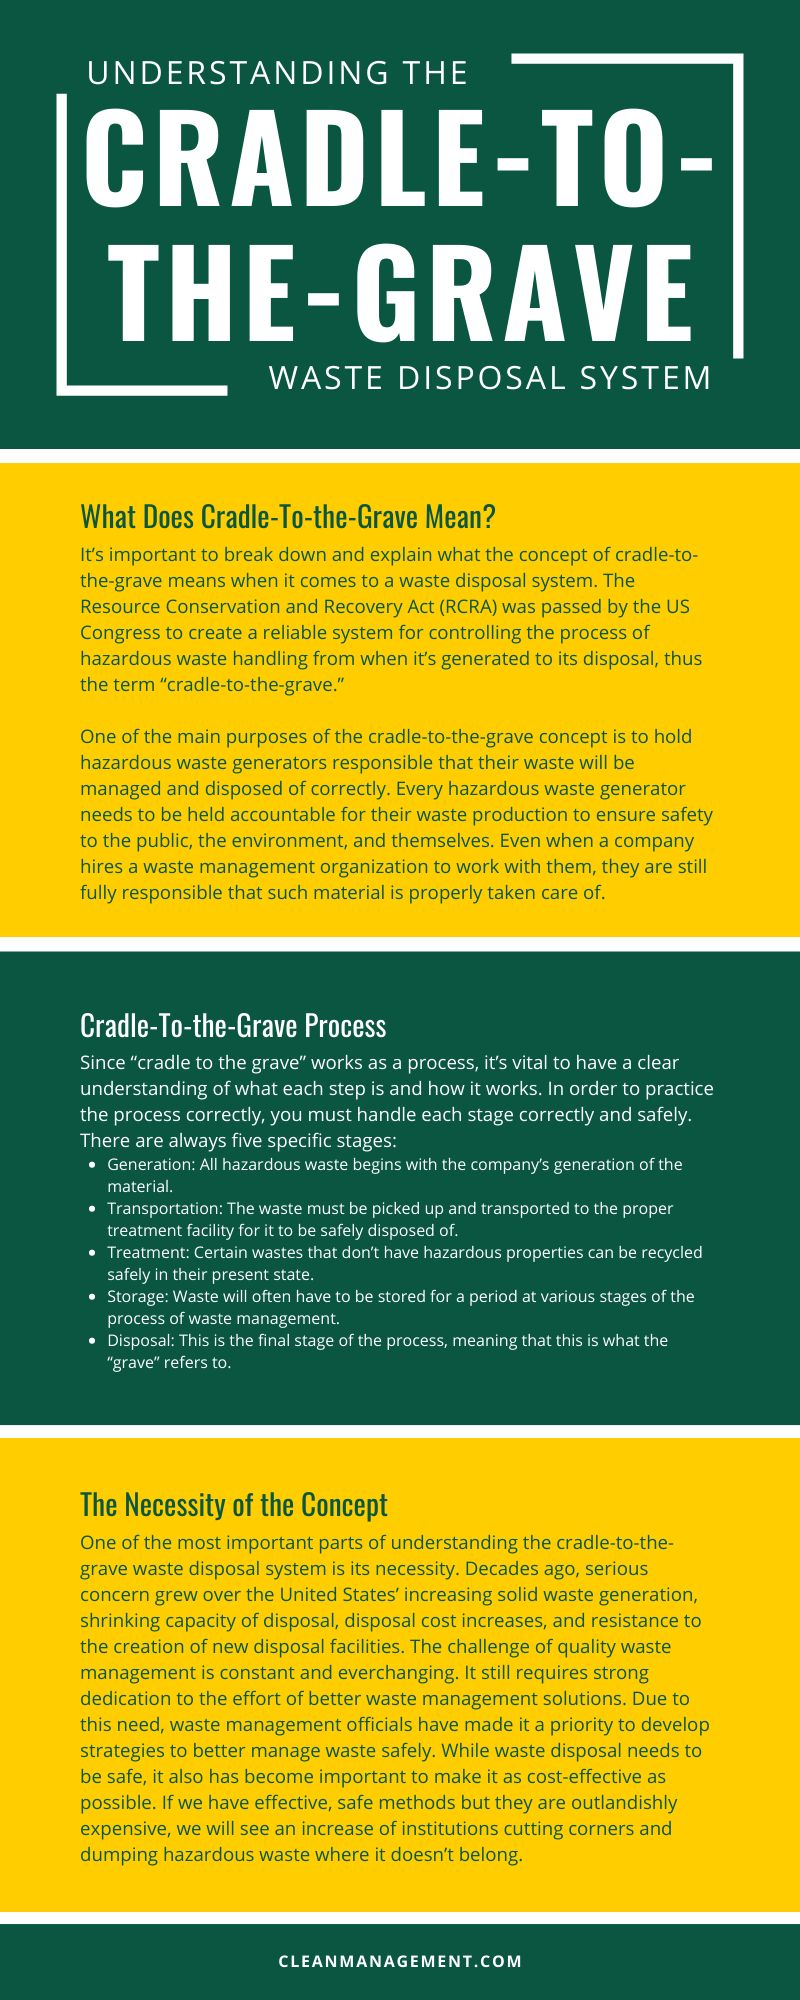 Understanding the Cradle-To-the-Grave Waste Disposal System